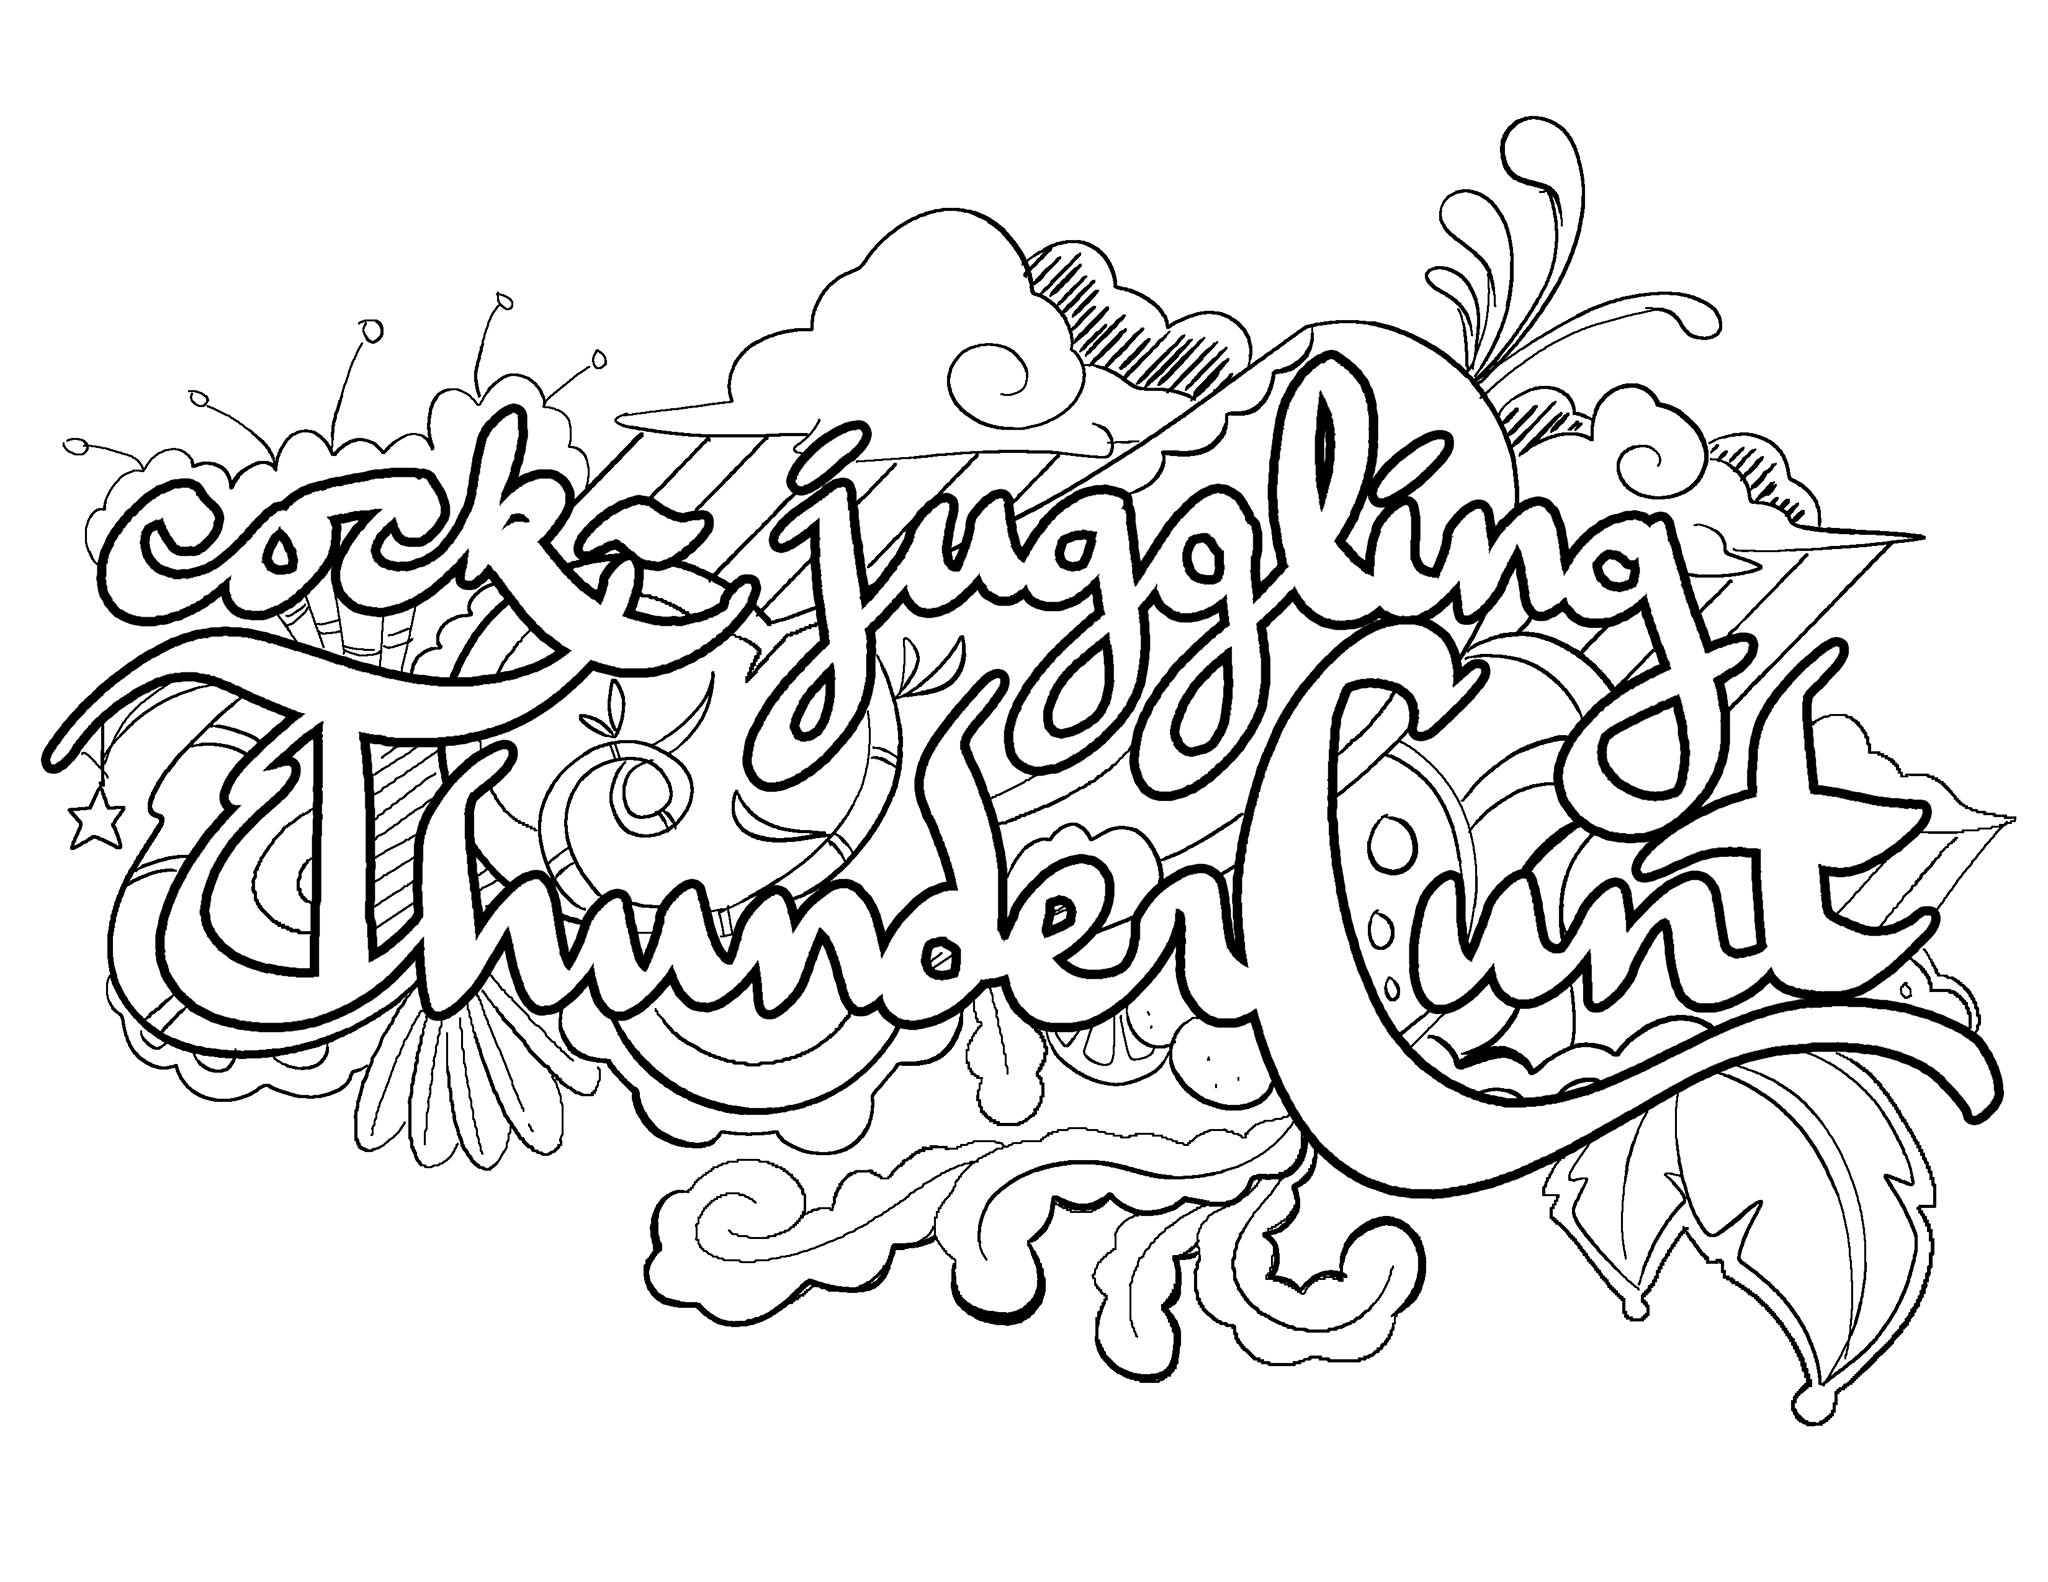 Cock Juggling Thunder Cunt Coloring Page by Colorful Language